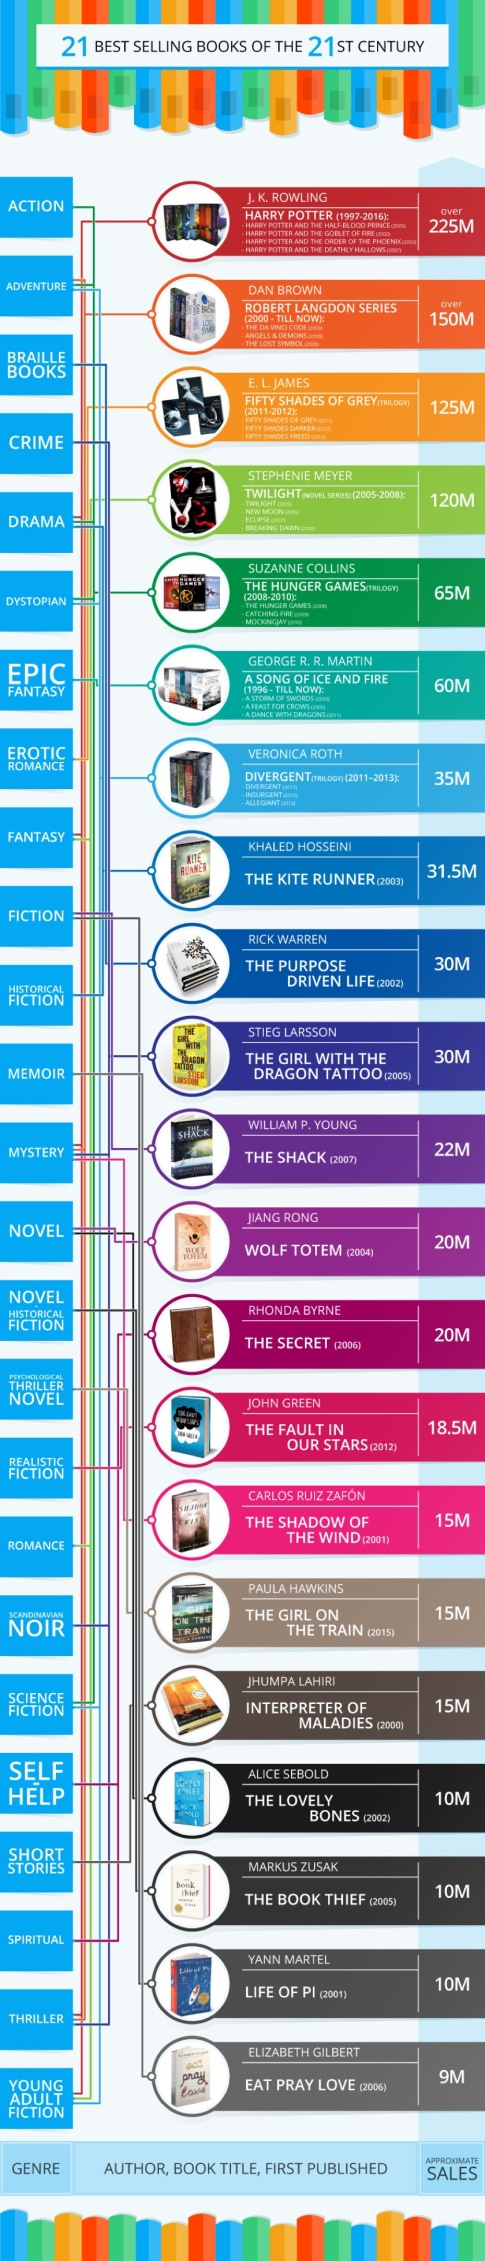 Bestselling-books-of-the-21st-century-by-genre